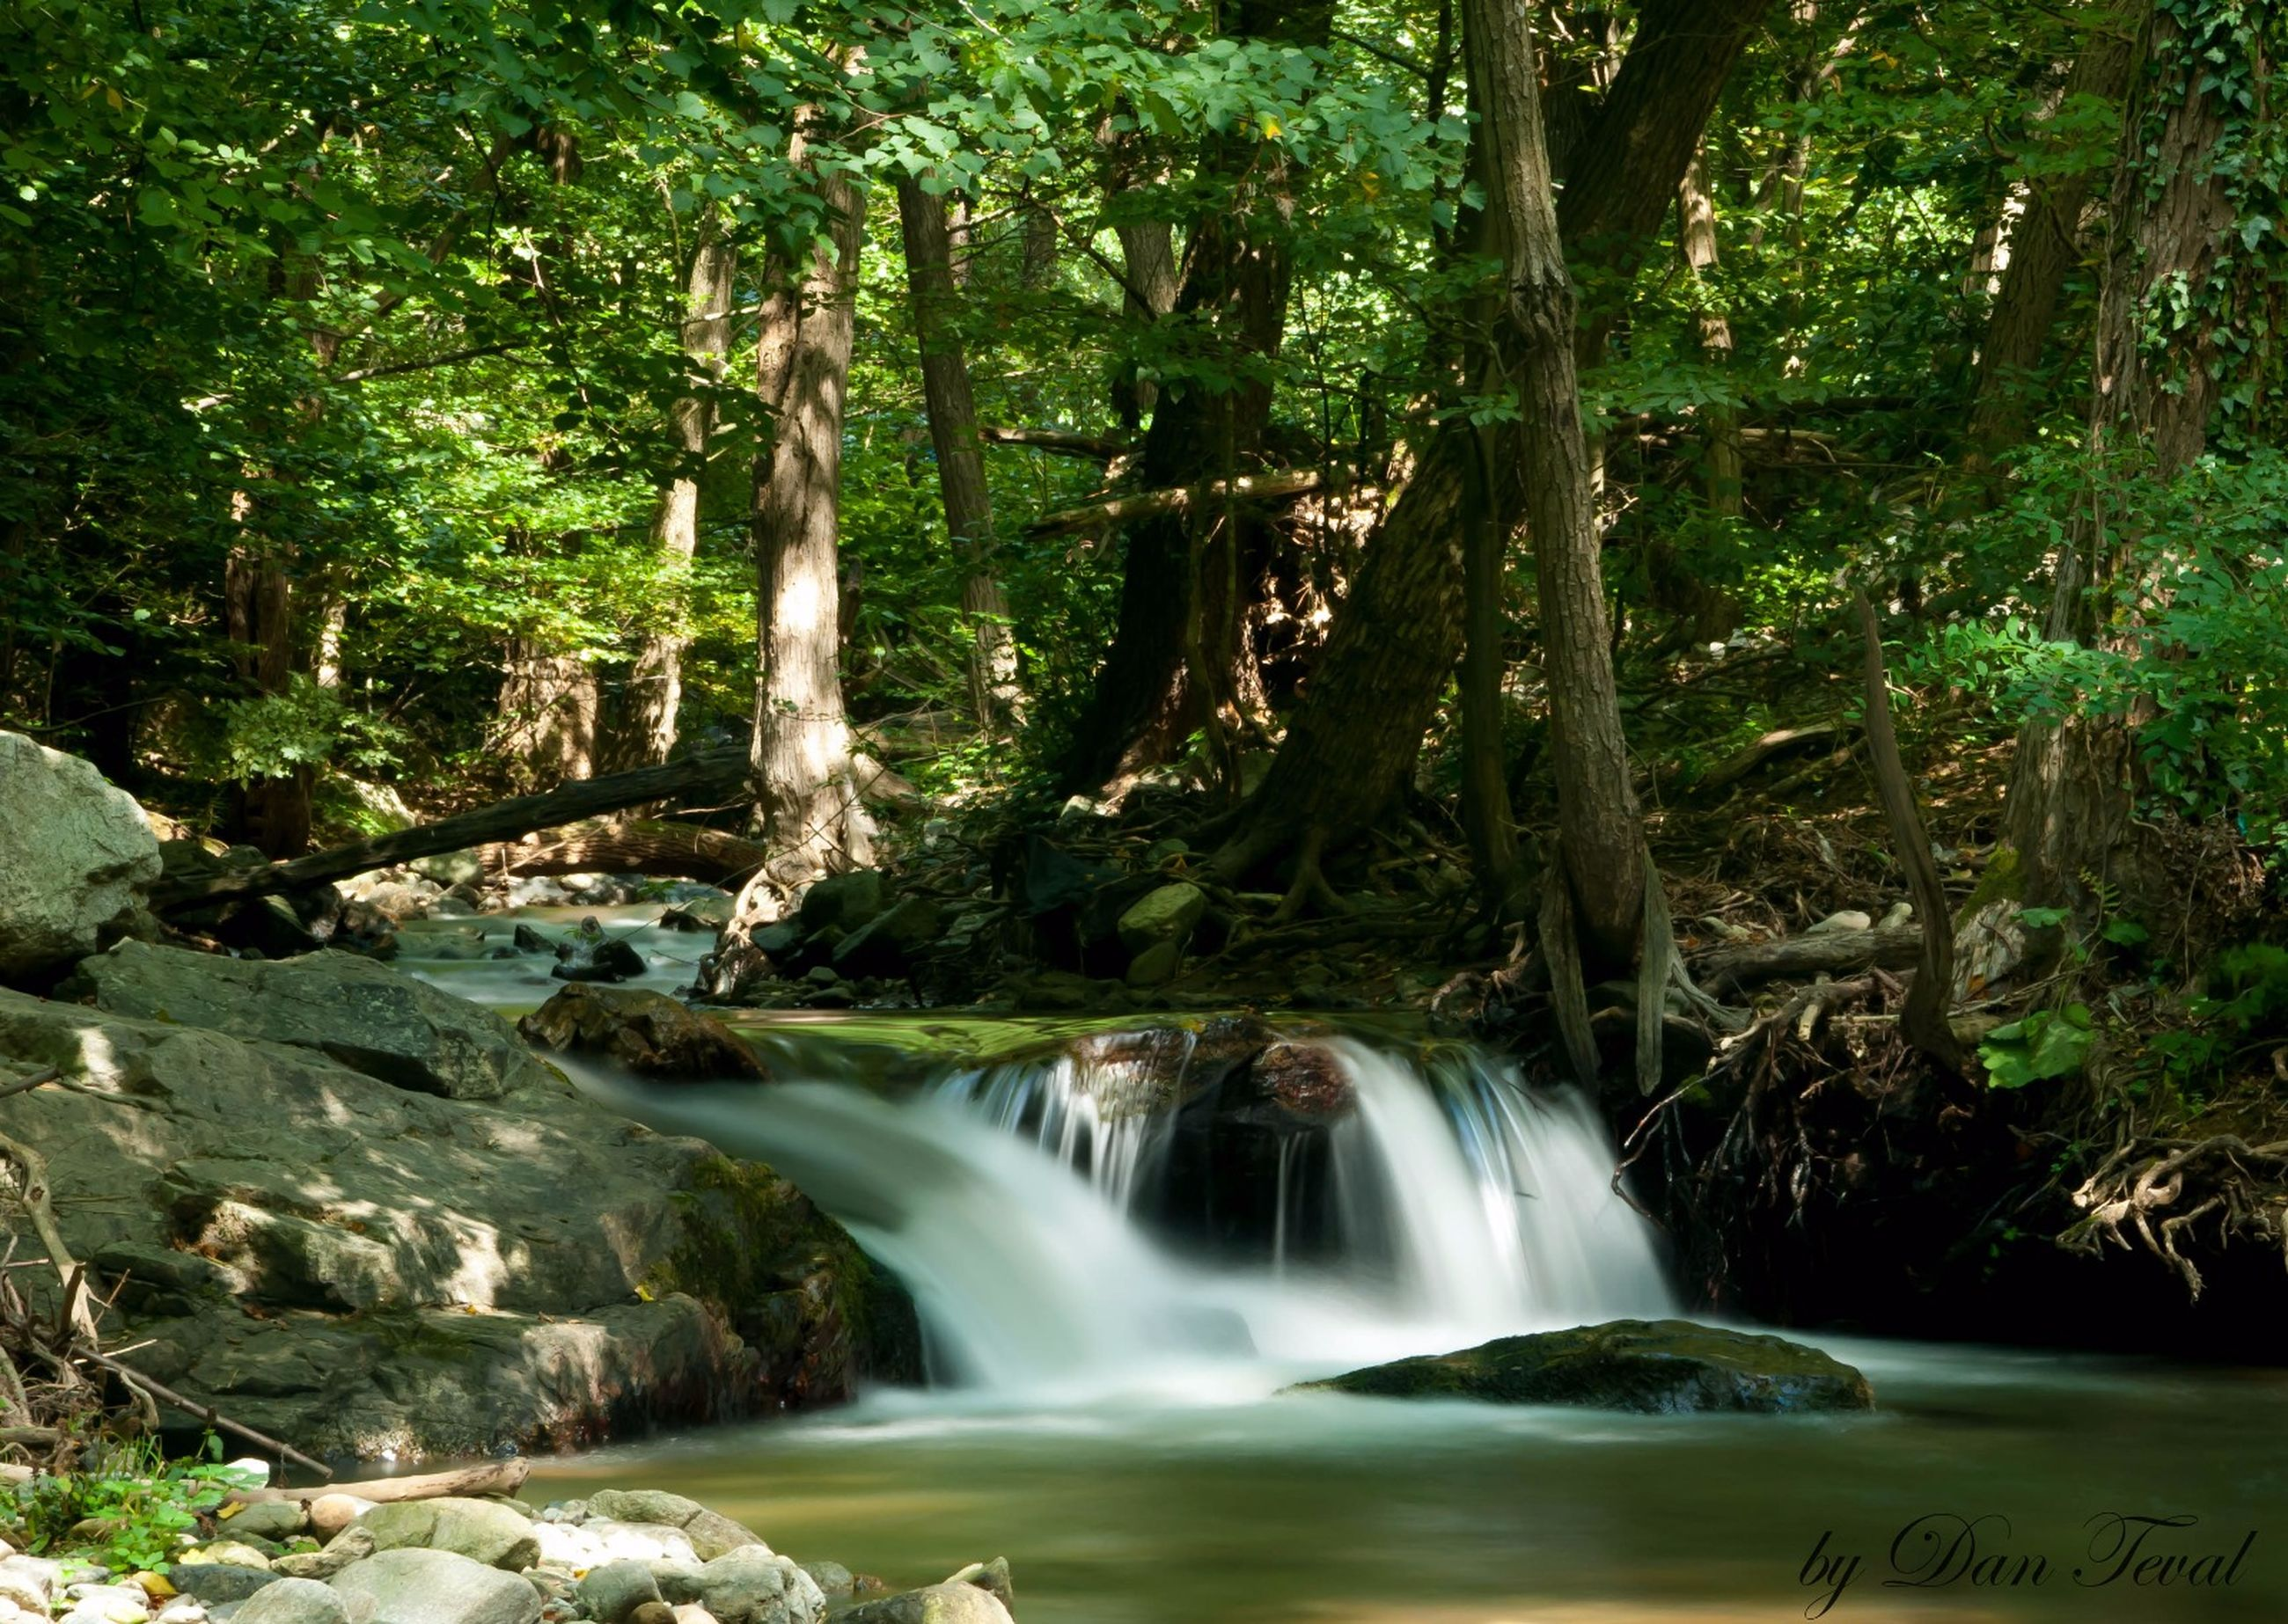 motion, forest, water, waterfall, flowing, flowing water, tree, scenics, long exposure, beauty in nature, blurred motion, tree trunk, nature, stream, tranquil scene, environment, green color, growth, non-urban scene, day, moss, lush foliage, outdoors, power in nature, tranquility, woodland, falling water, no people, natural landmark, green